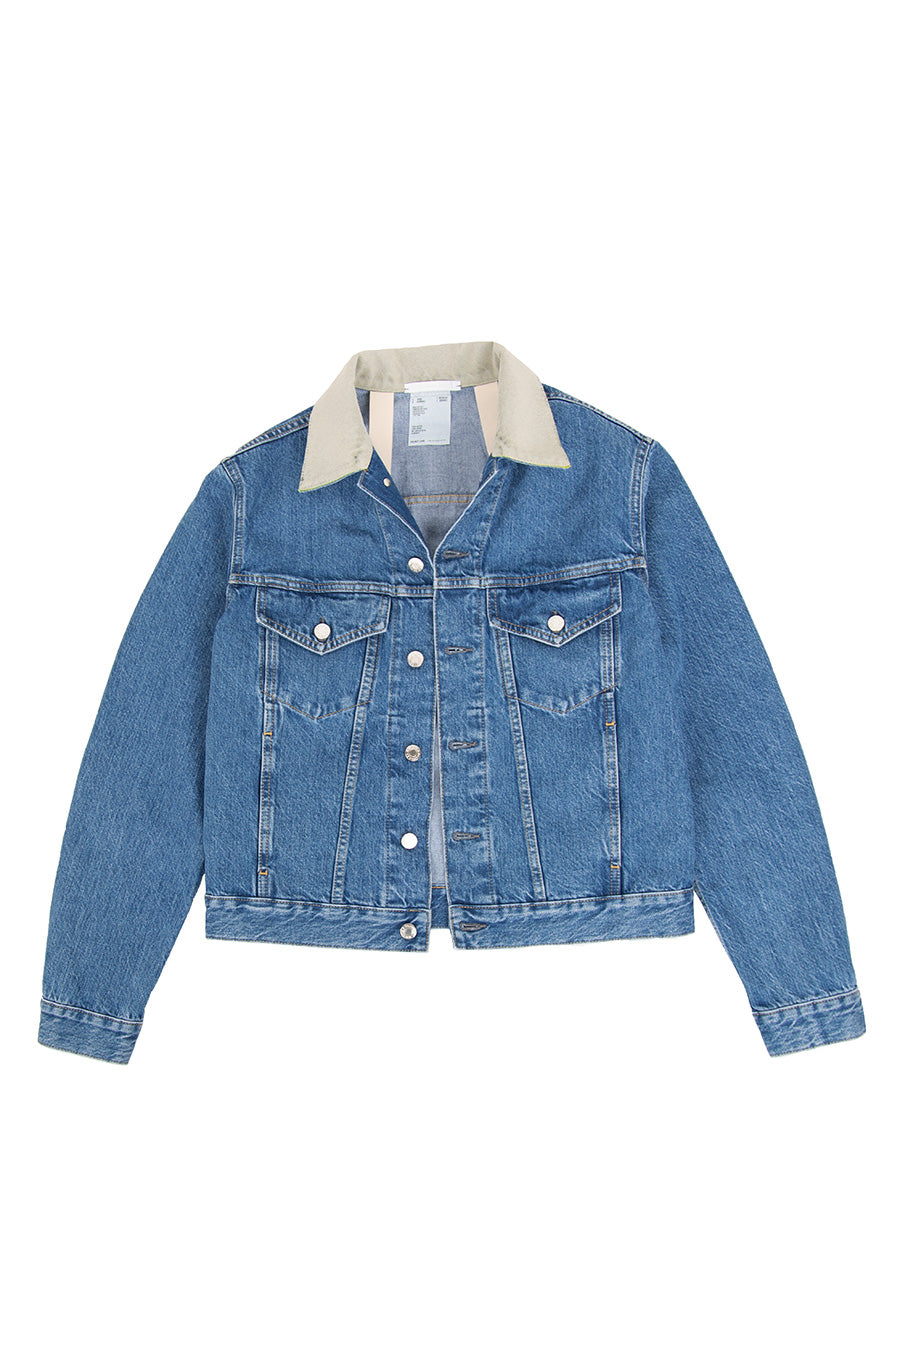 Helmut Lang - Blue Masc Big Trucker Jacket | 1032 SPACE